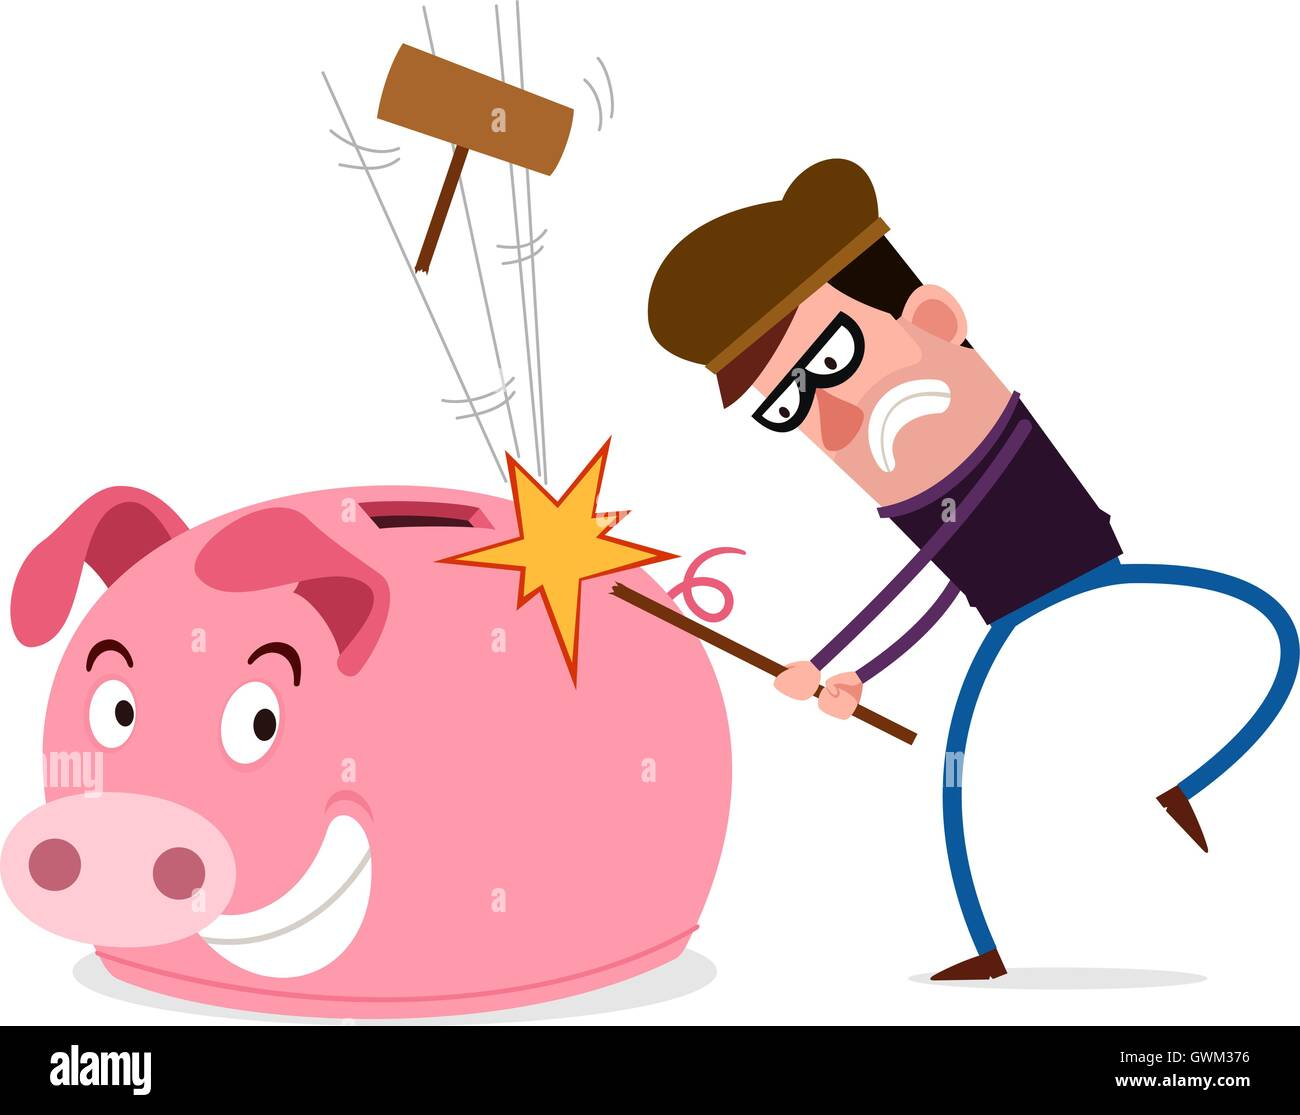 tricky thief failed to breaking piggy bank - Stock Image